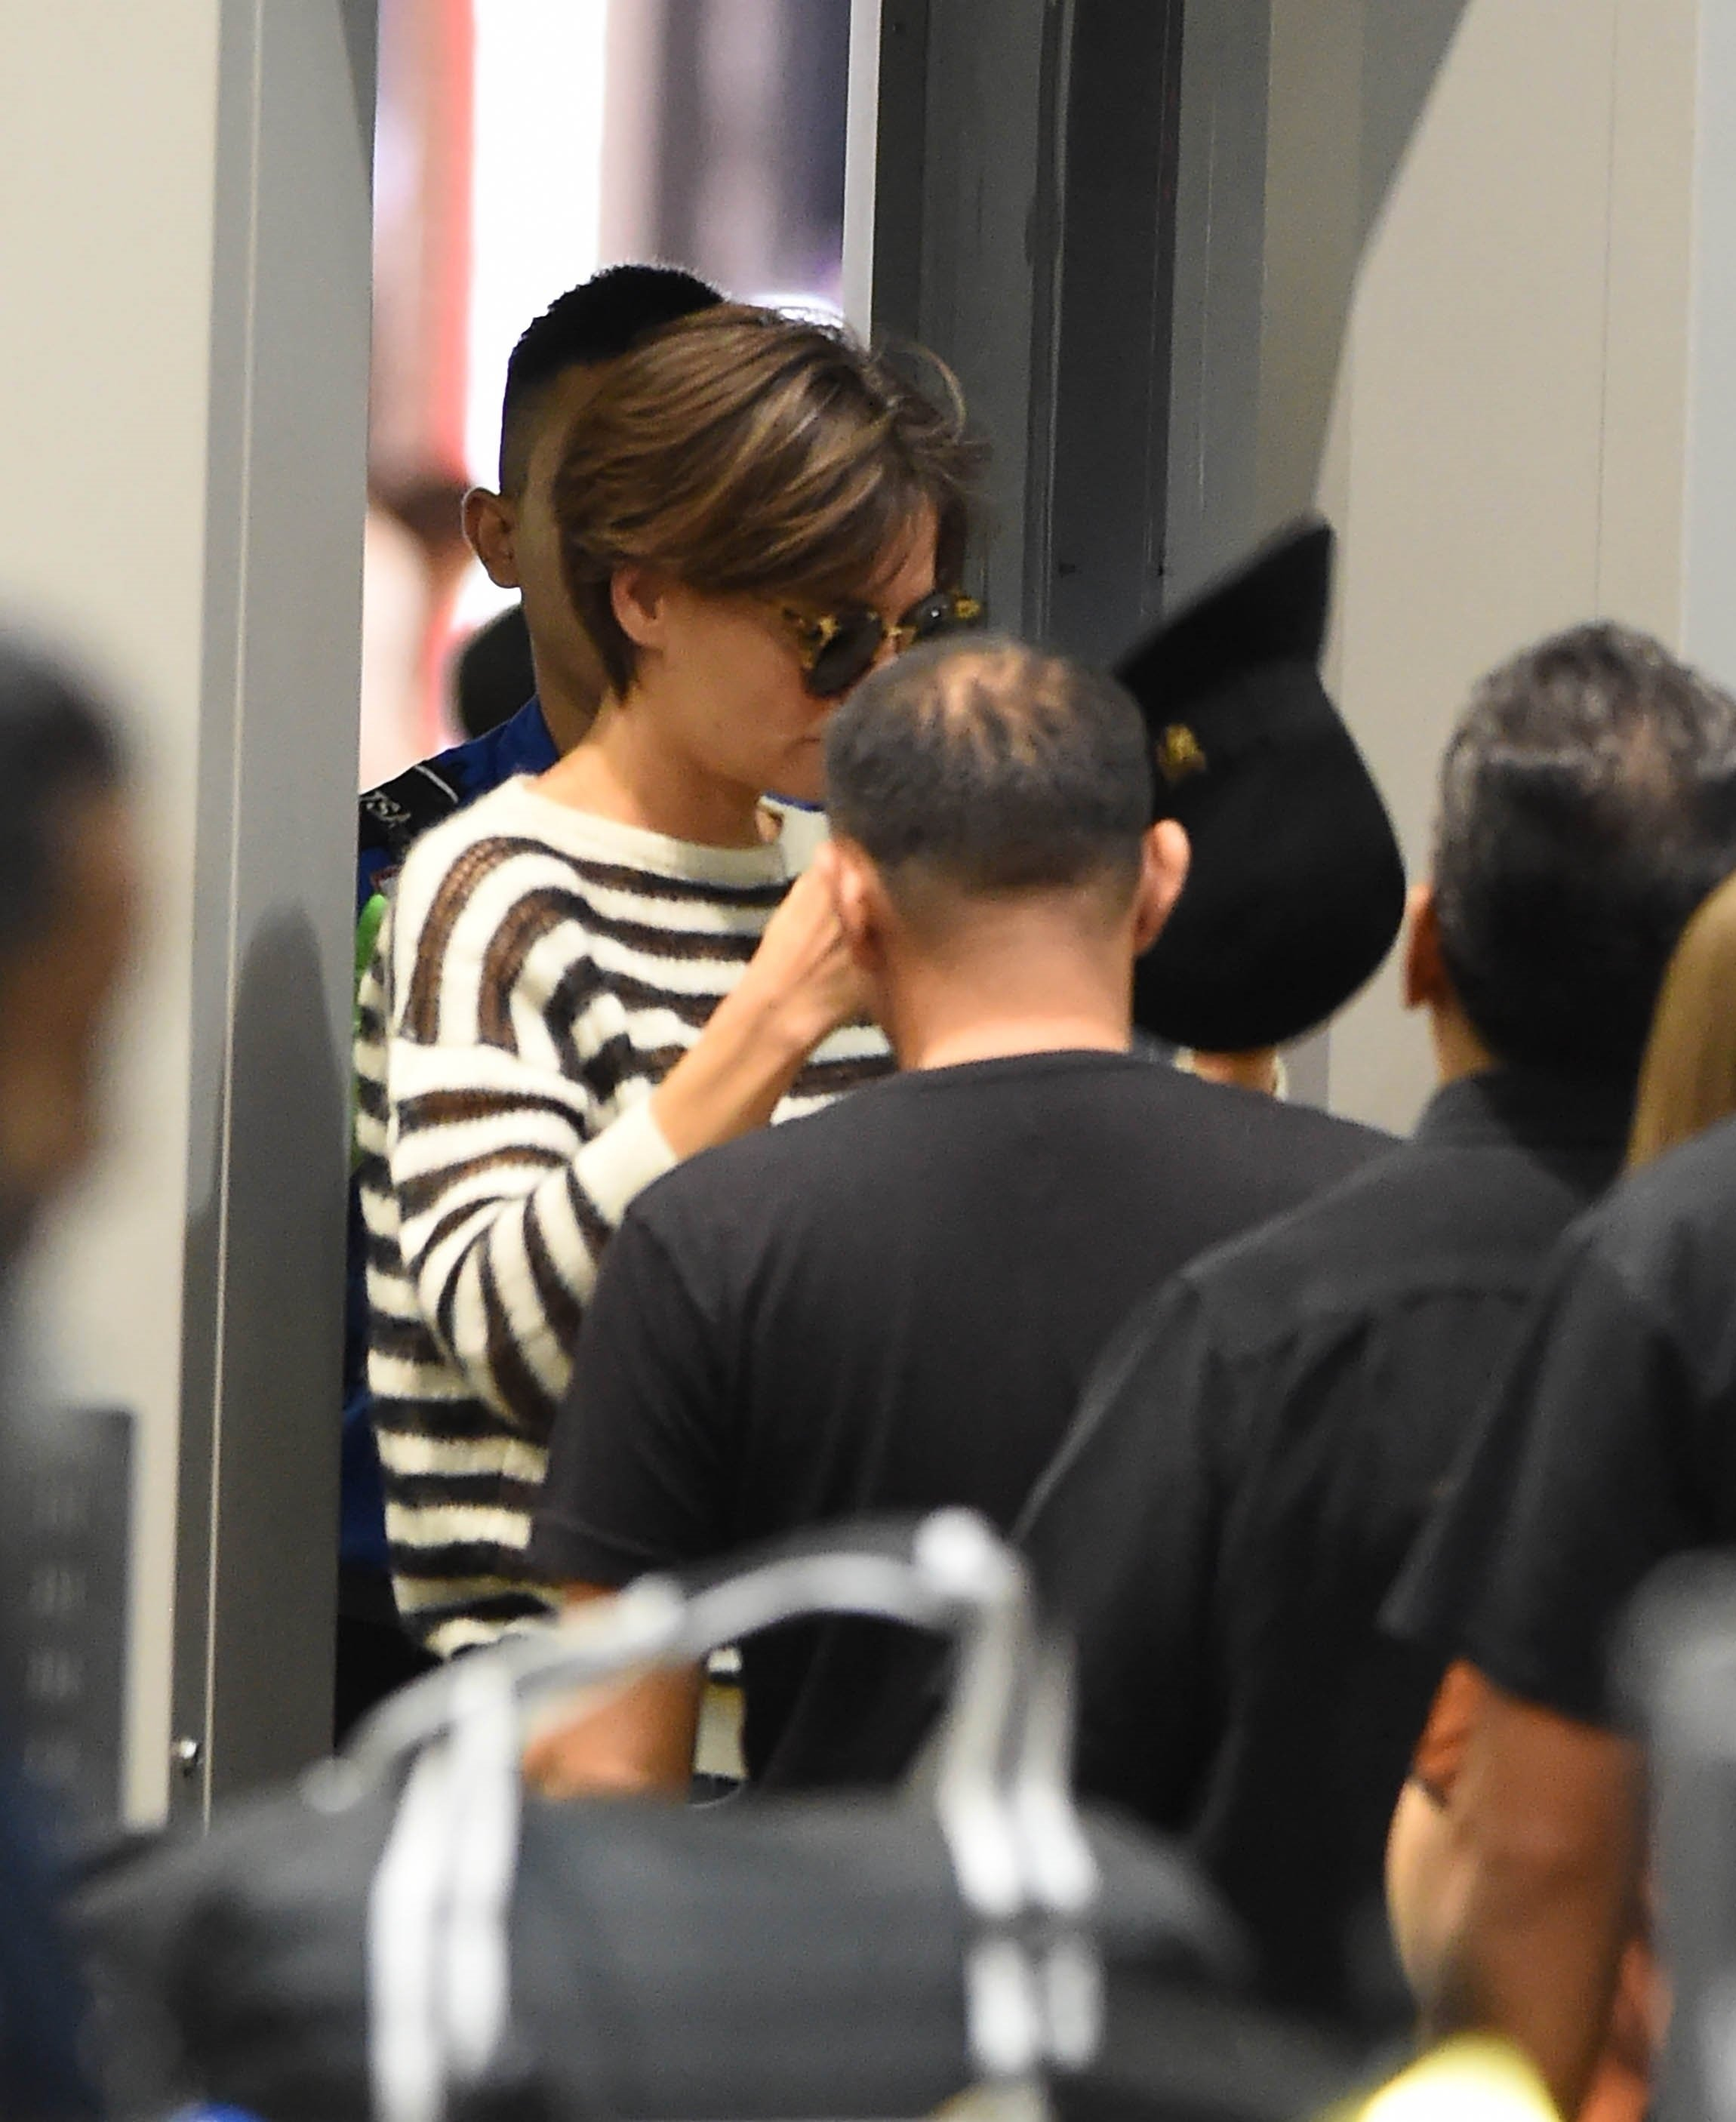 Los Angeles, CA  - Katie Holmes debuts a new short haircut as she heads through LAX. Katie tried to hide underneath a wide brimmed black hat and glasses but had remove the hat and glasses when going through security.  Pictured: Katie Holmes    *UK Clients - Pictures Containing Children Please Pixelate Face Prior To Publication*, Image: 353465038, License: Rights-managed, Restrictions: , Model Release: no, Credit line: Profimedia, AKM-GSI